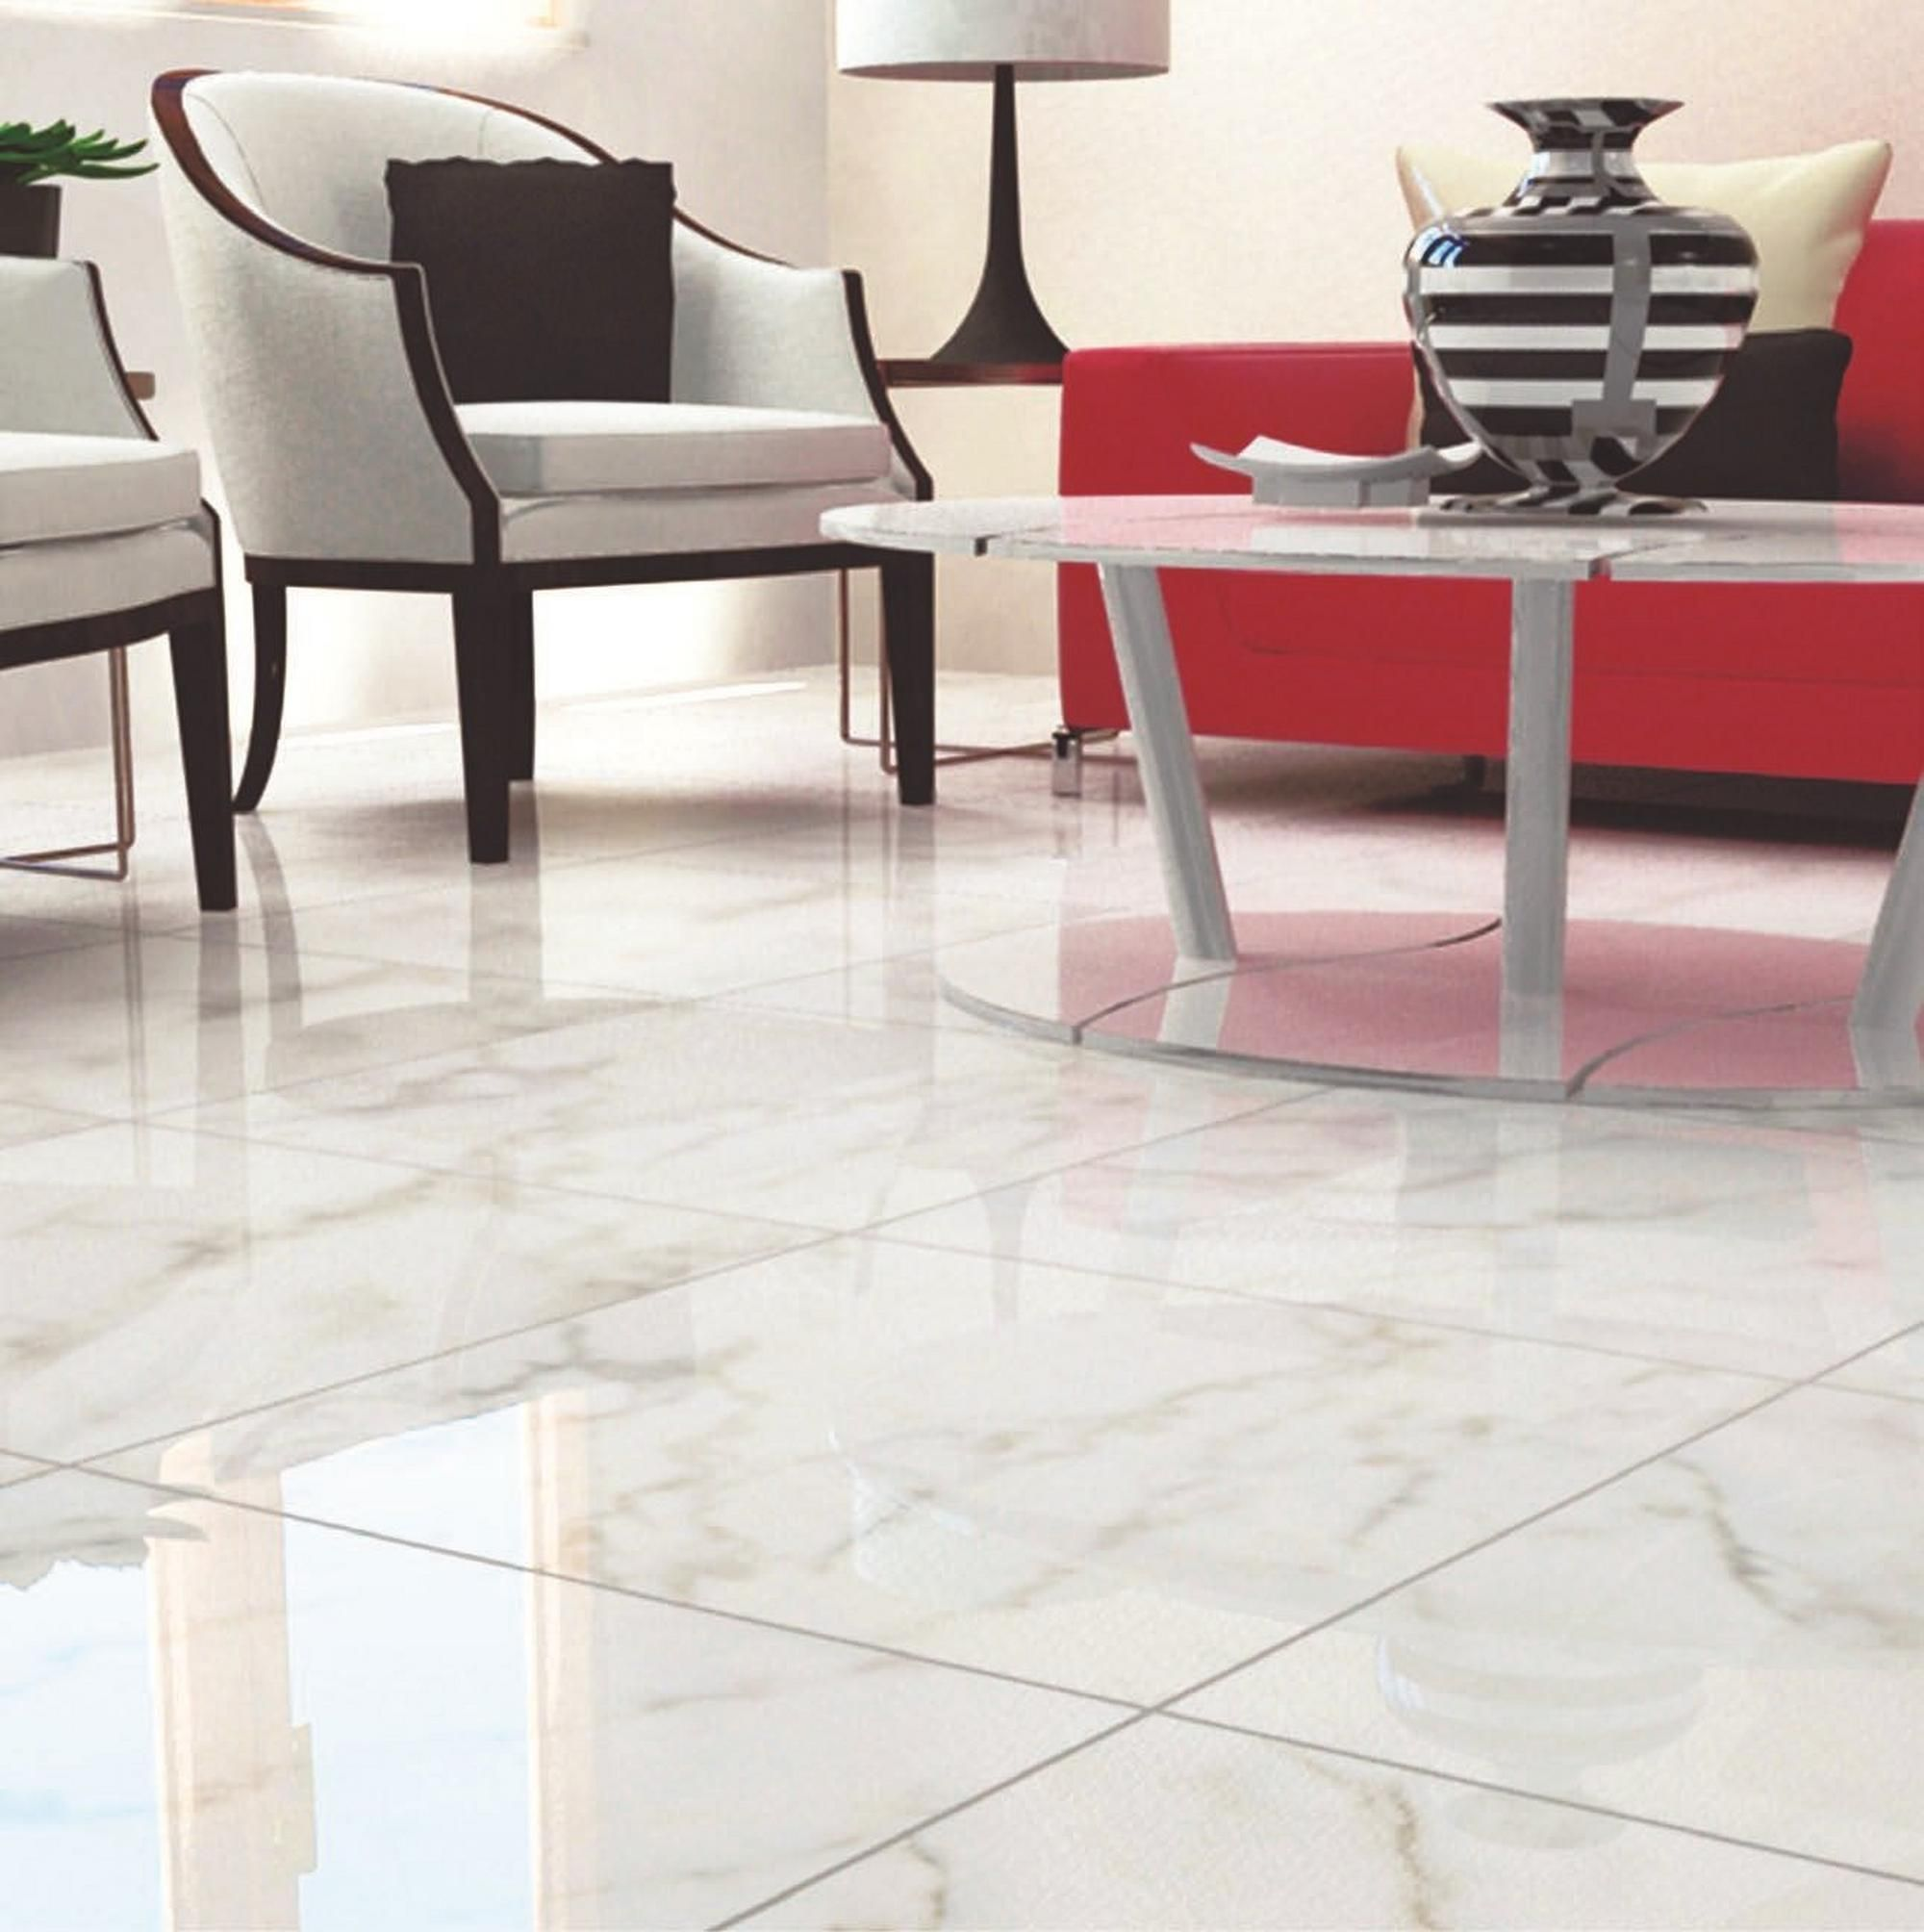 Carrara White High Gloss Ceramic Tile Floor Decor Ceramic Floor Tile Porcelain Tile Floor Living Room Ceramic Floor